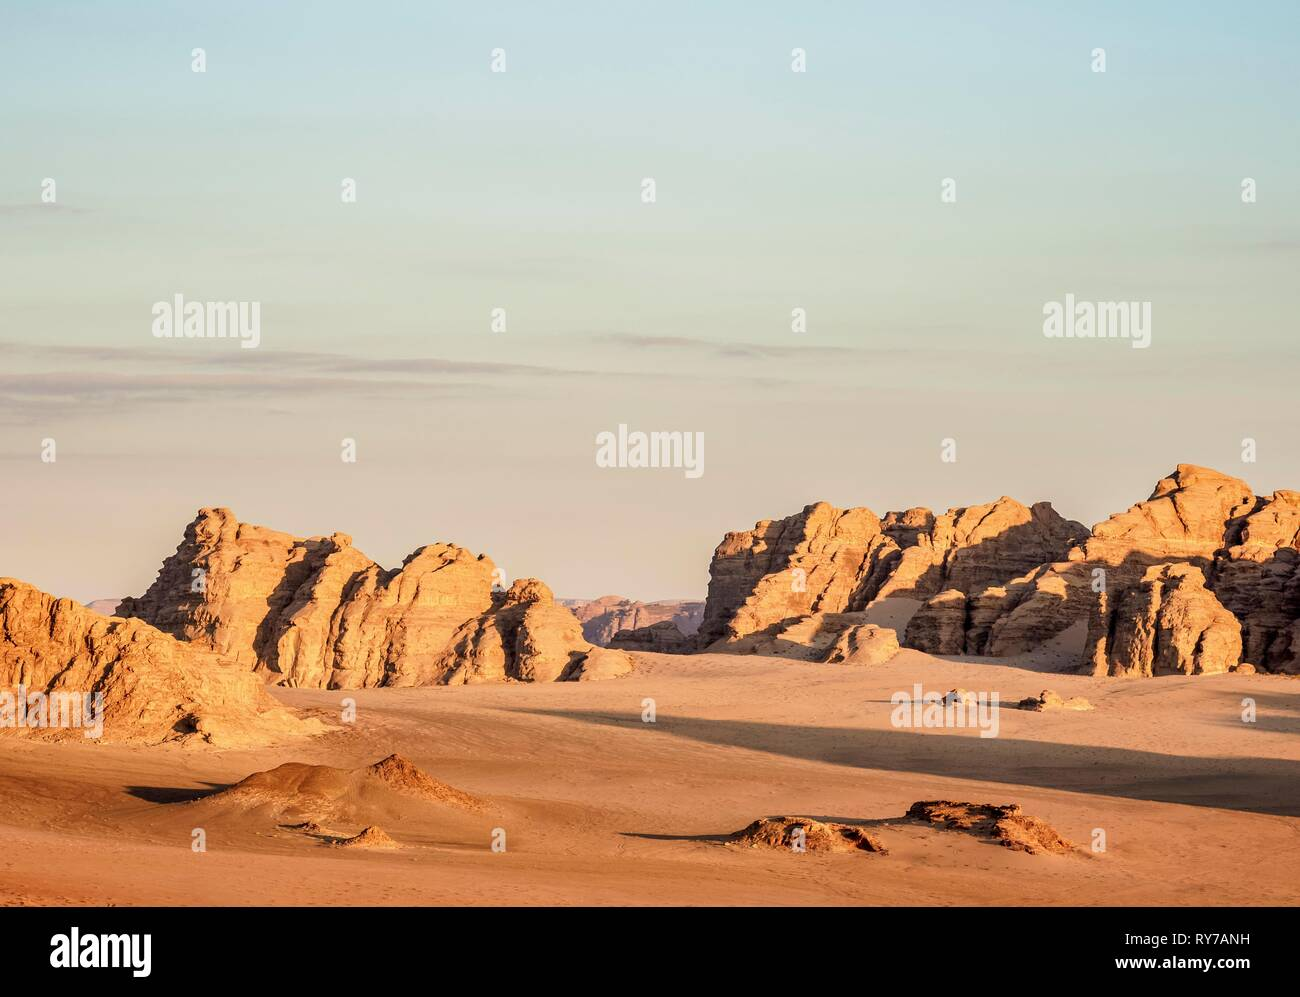 Desert landscape with rocks at morning light, Wadi Rum, aerial view from a balloon, Aqaba Governorate, Jordan Stock Photo